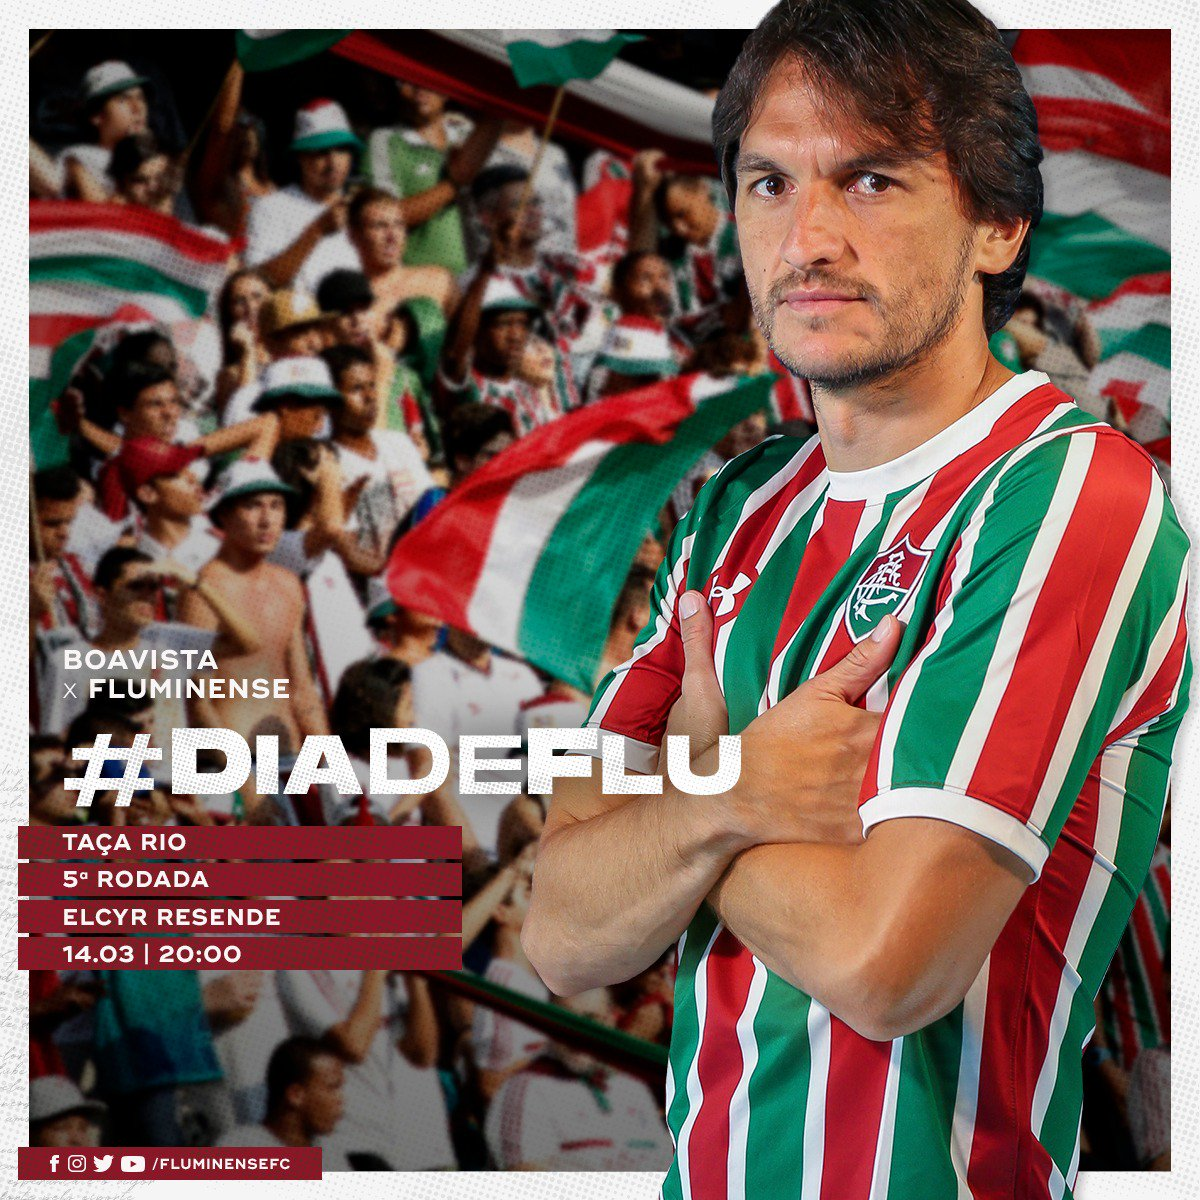 Fluminense F.C.'s photo on Bacaxá